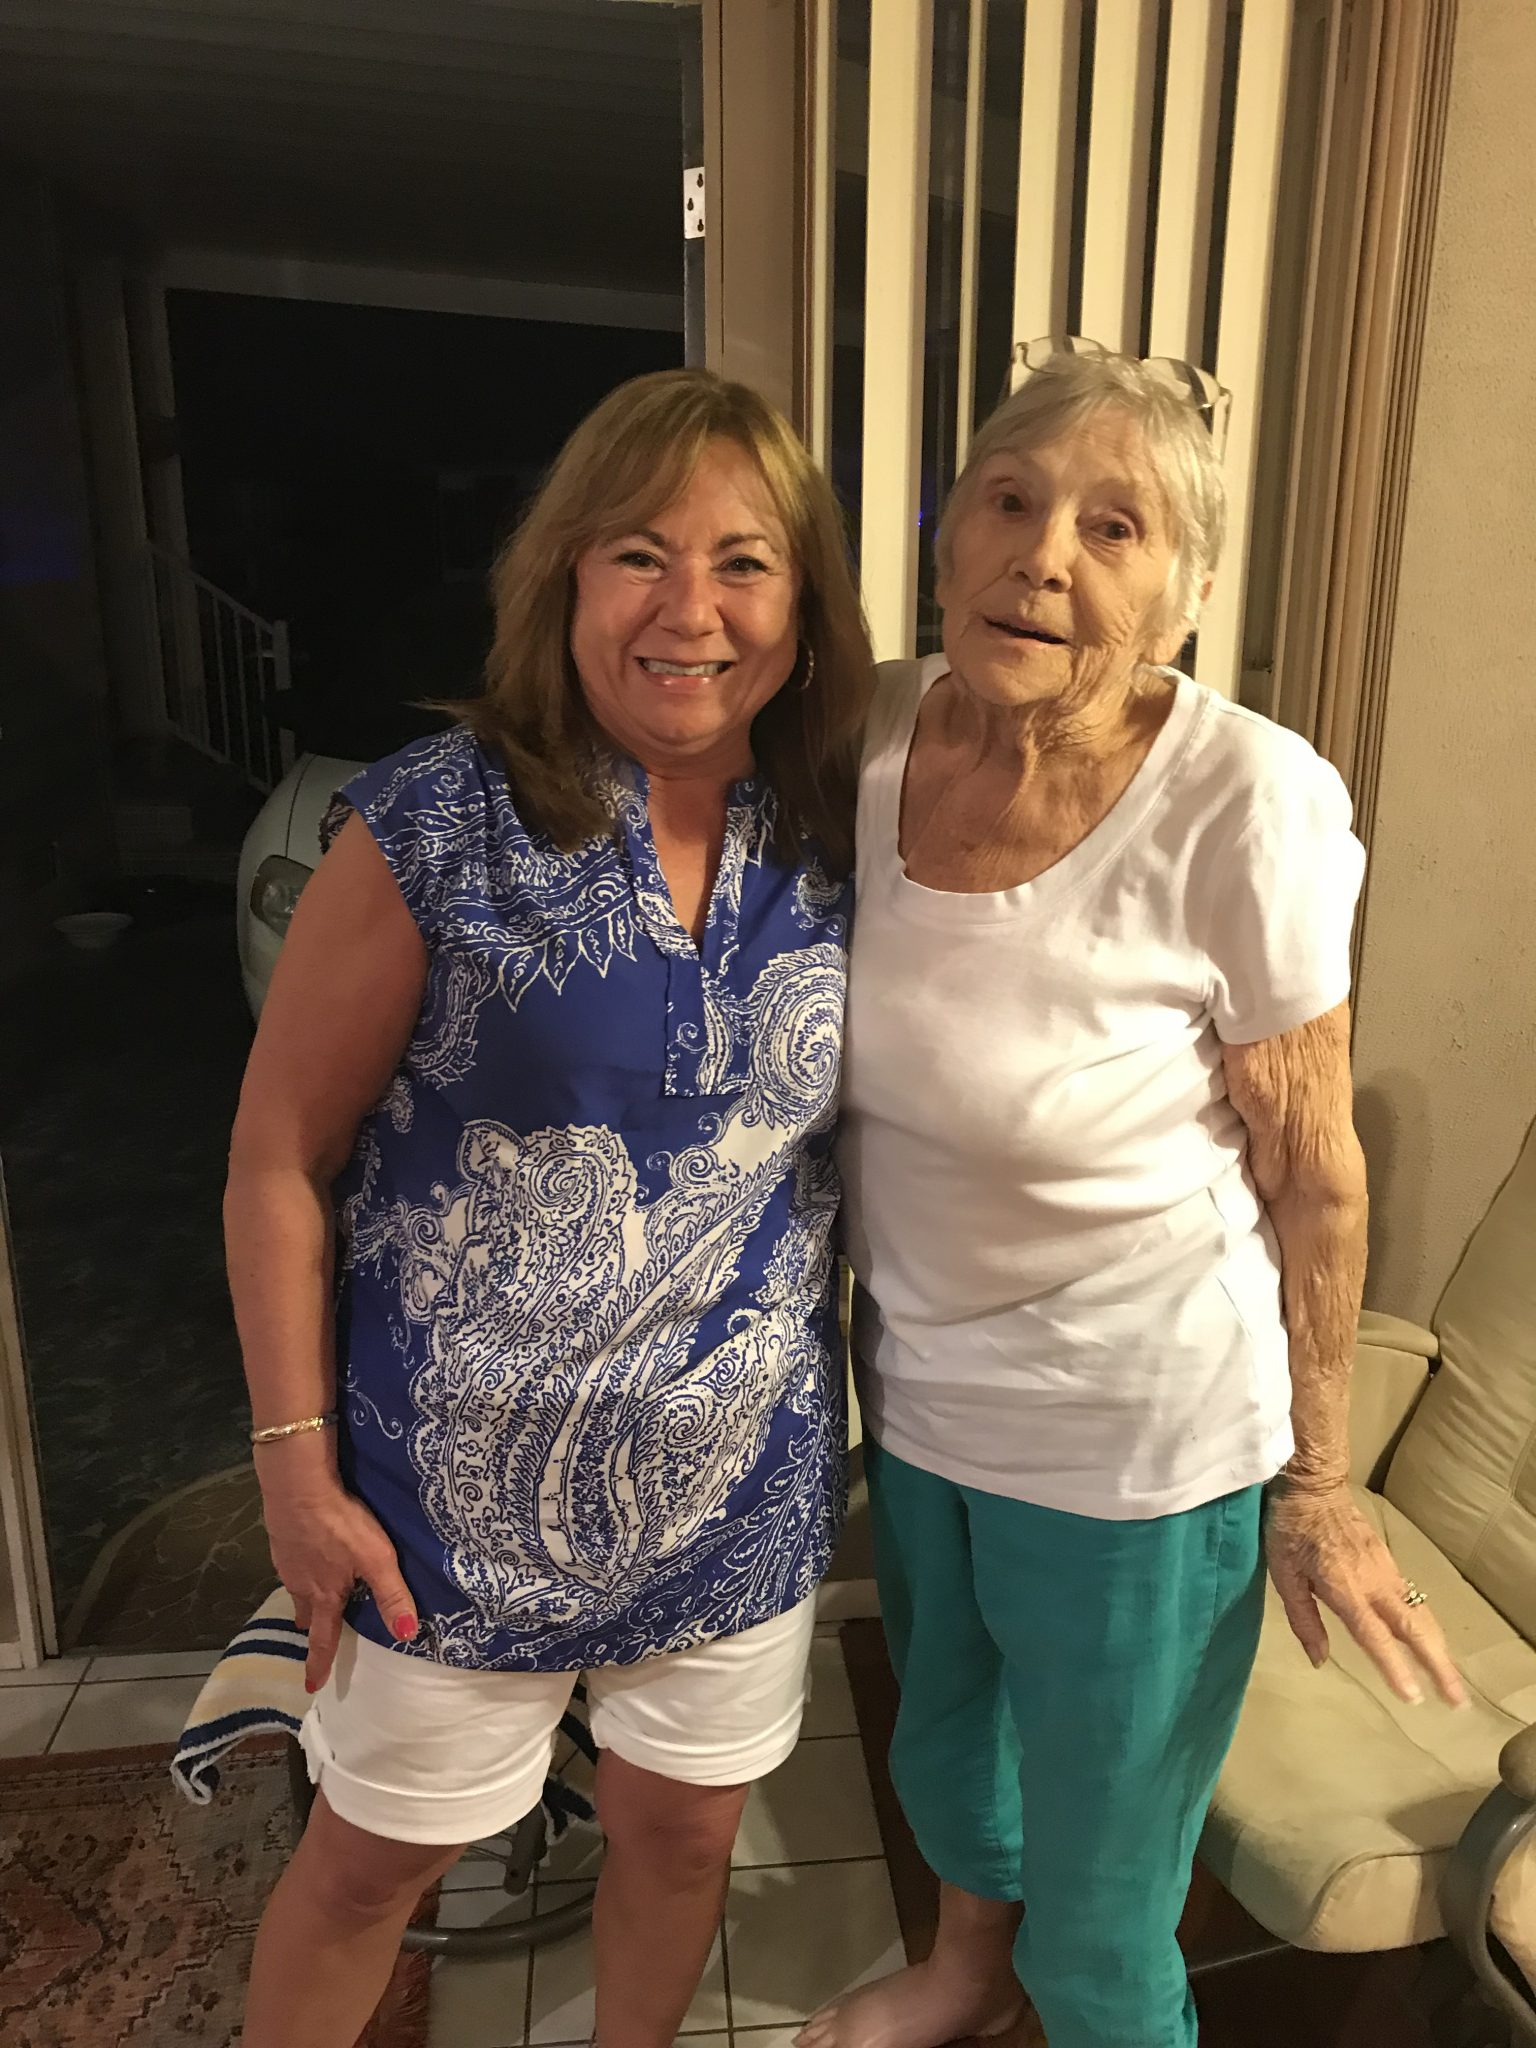 Sylvia and daughter Pam on her 81st birthday February 20, 2018